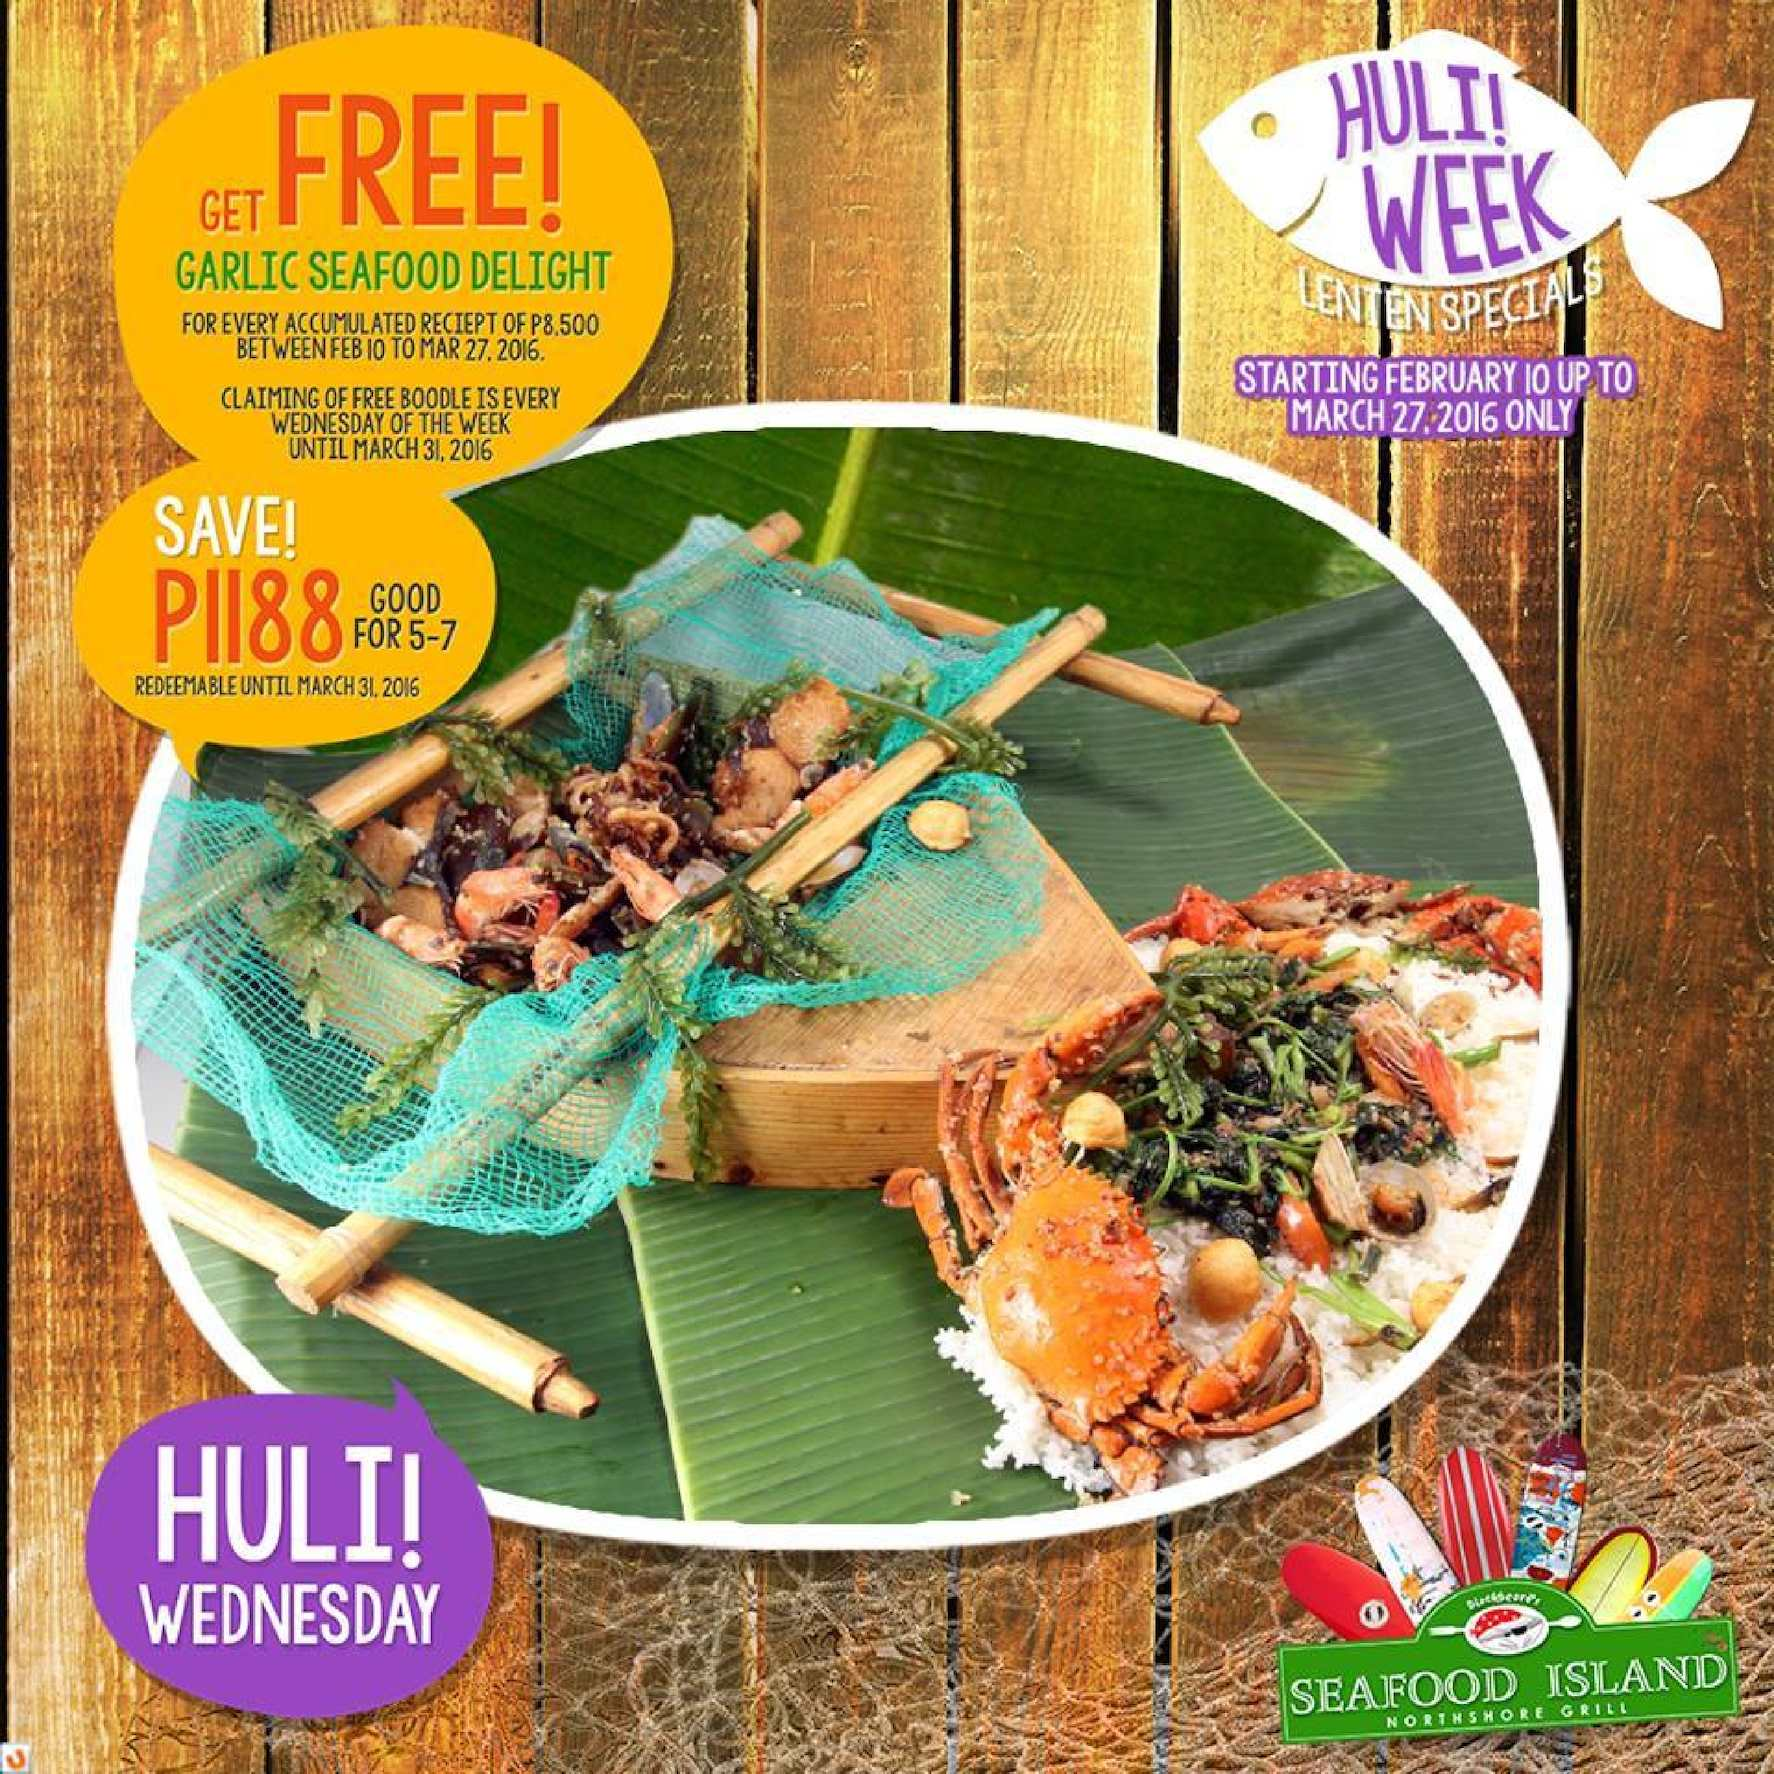 Free Garlic Seafood Delight When You ...